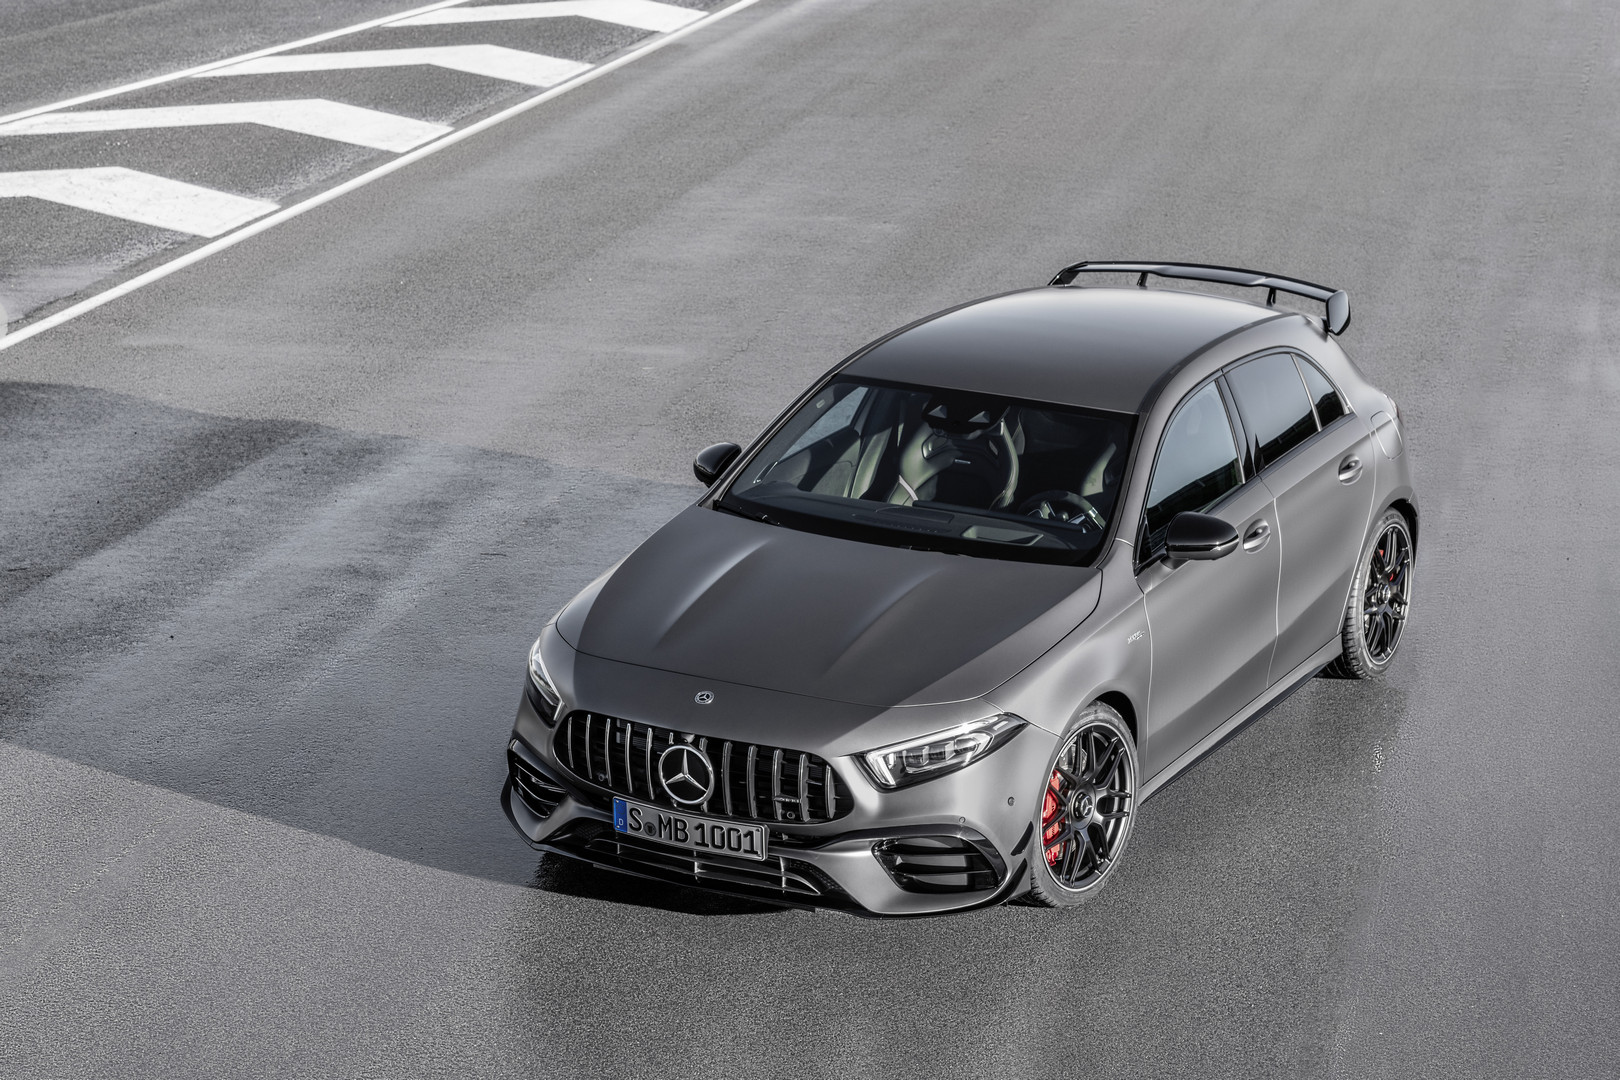 A45 S AMG Most Powerful Hot Hatch